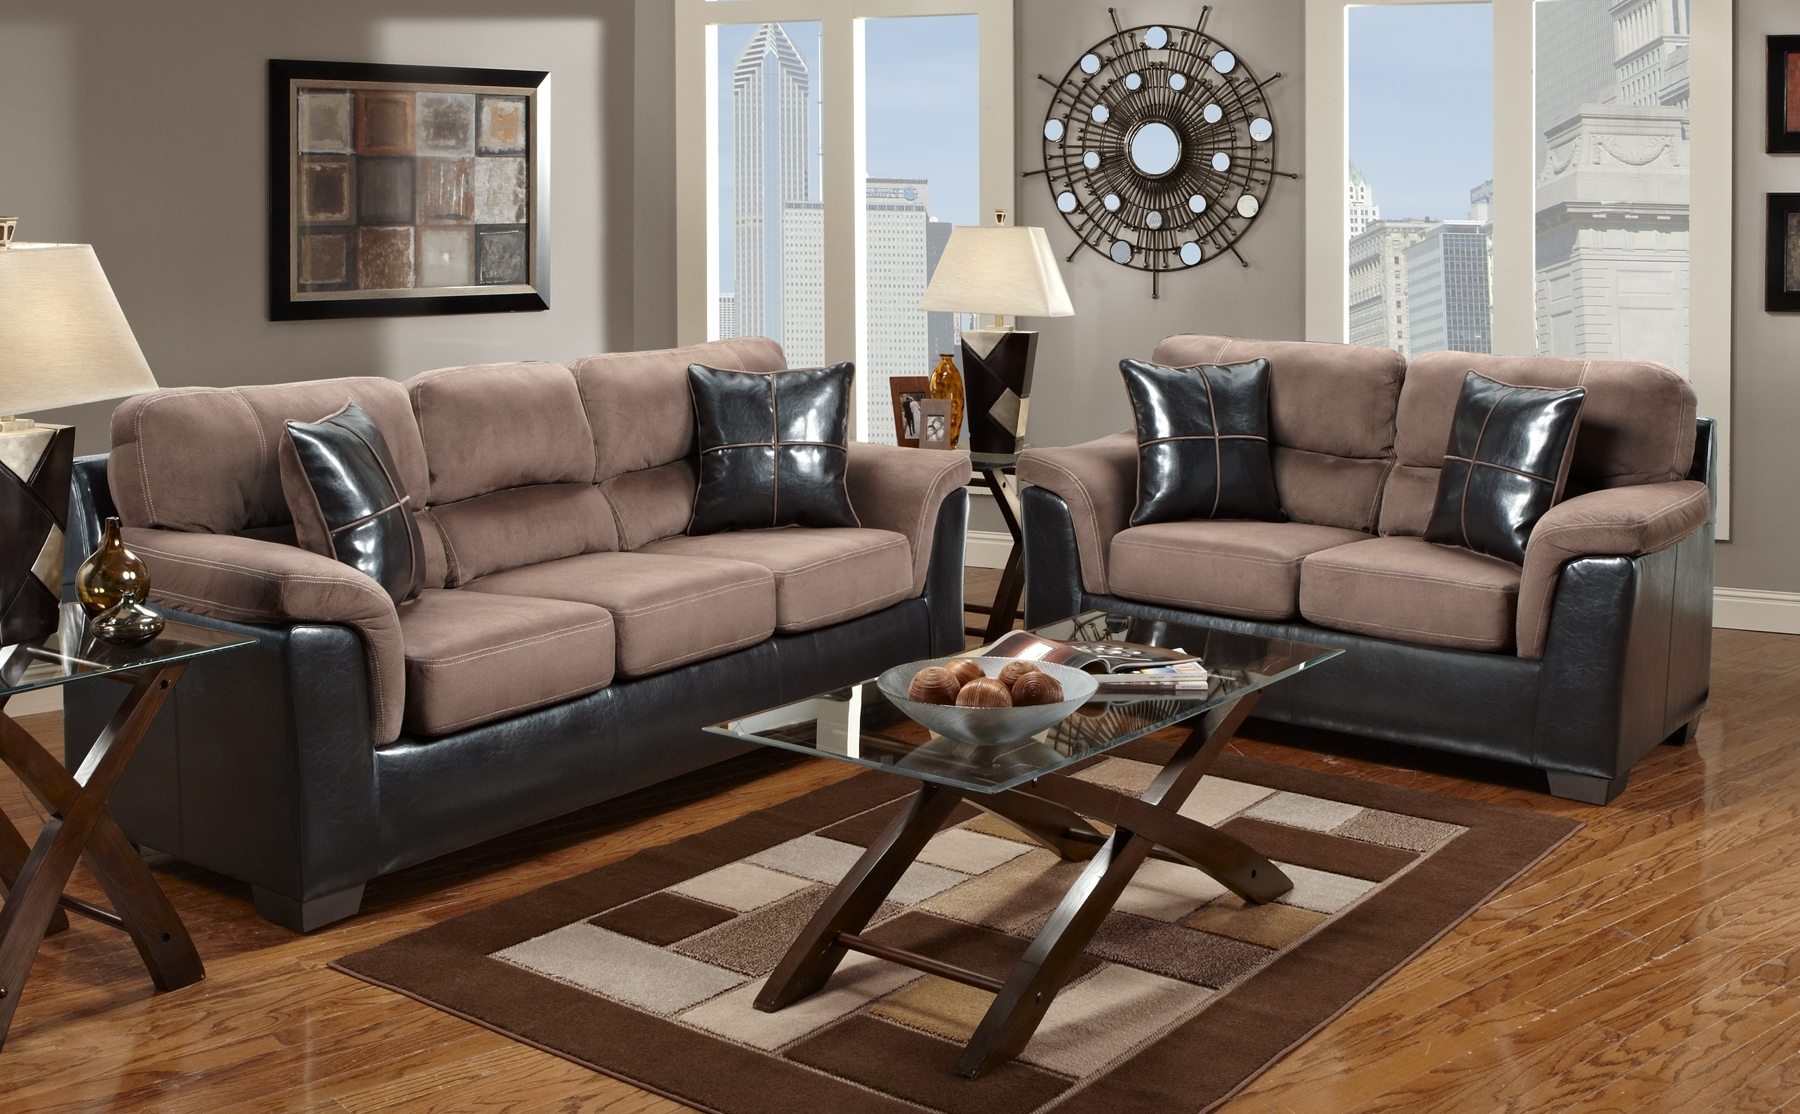 Two Tone Sofas In Most Current Recliners Chairs & Sofa : 42 Most Astonishing Two Tone Reclining (View 20 of 20)